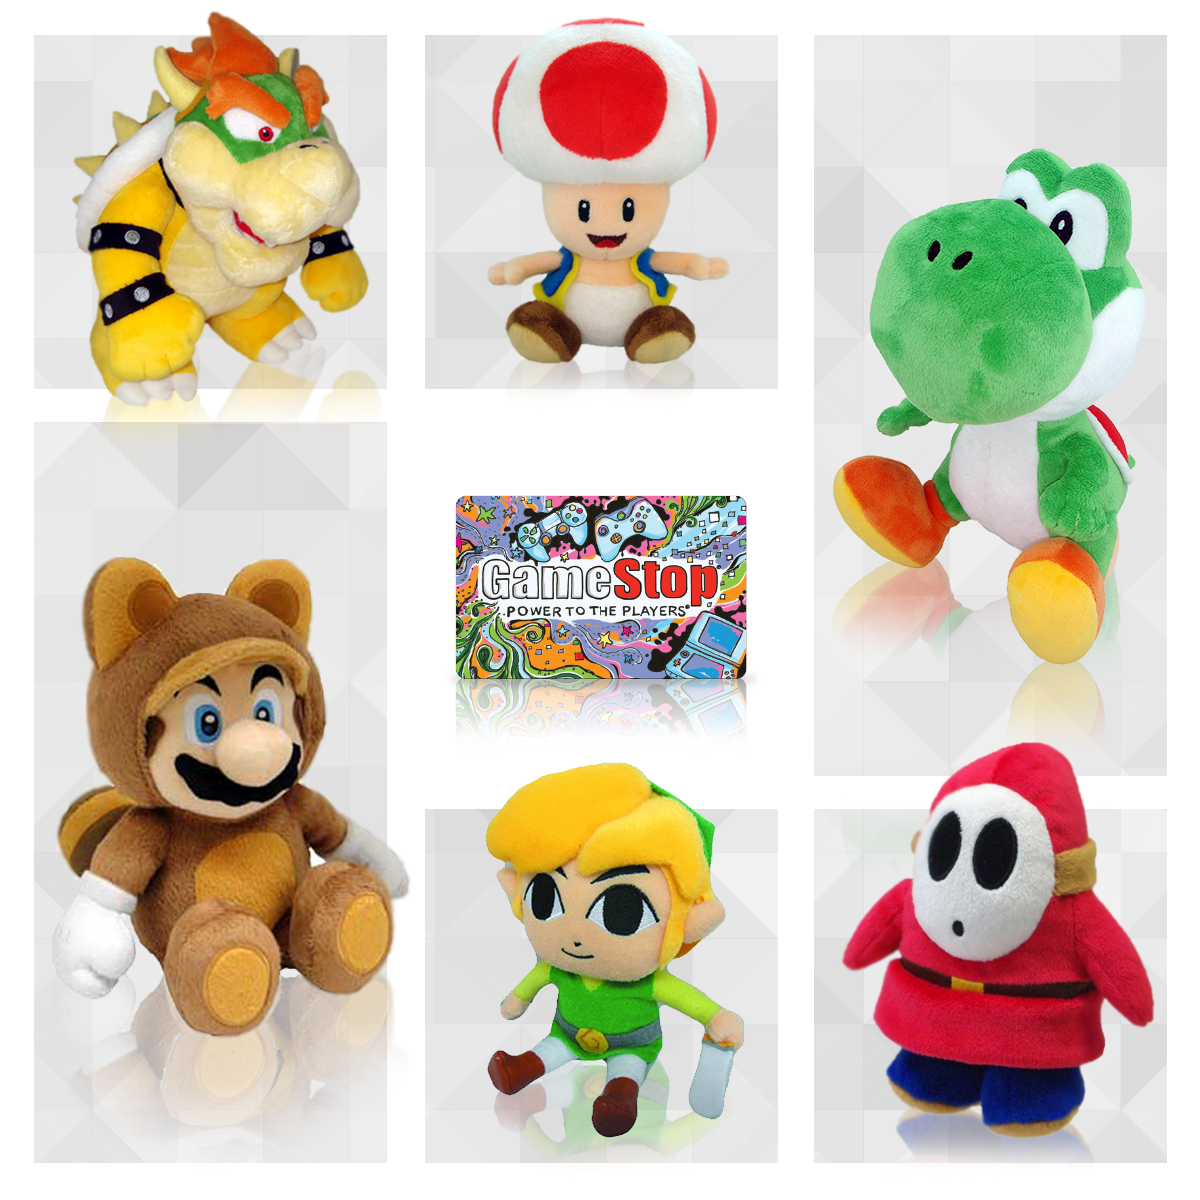 GameStop (@GameStop): These plushes available at GameStop are perfect for every #Nintendo fan! http://t.co/kbzHMR8rrr http://t.co/fbuSNm8fzh